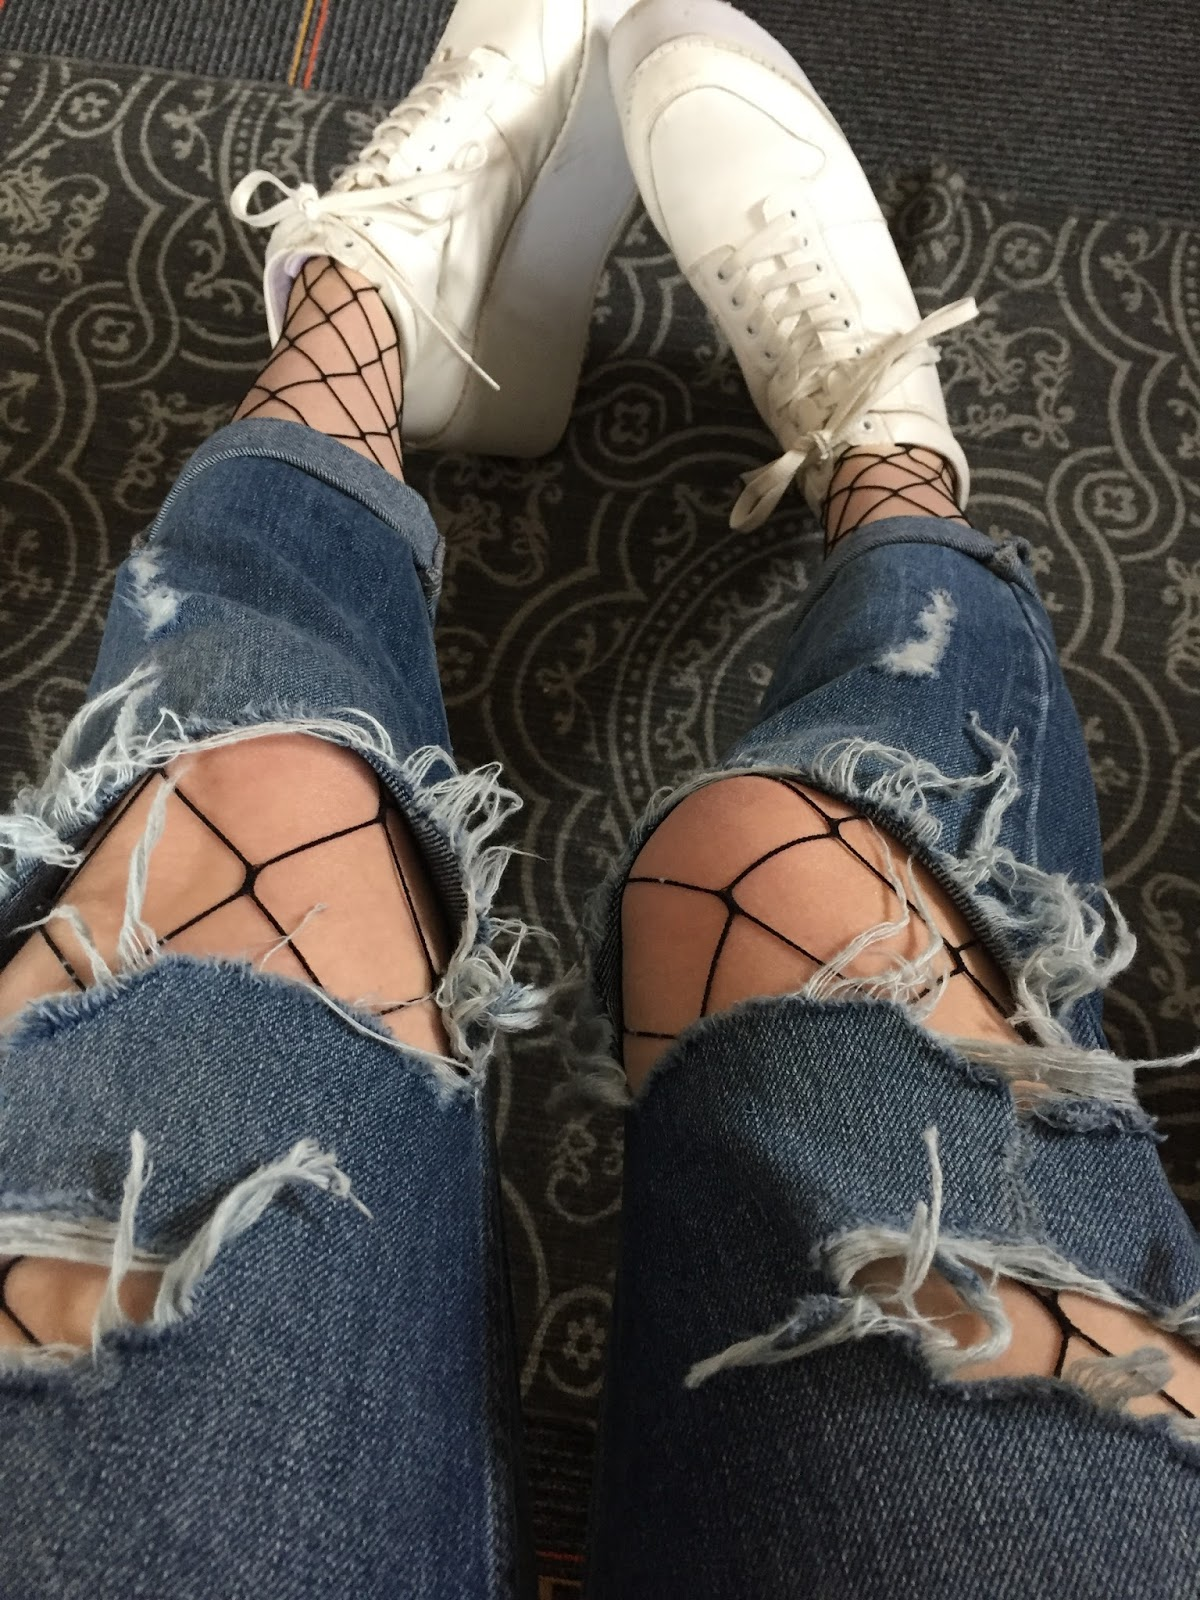 fishnets ripped jeans